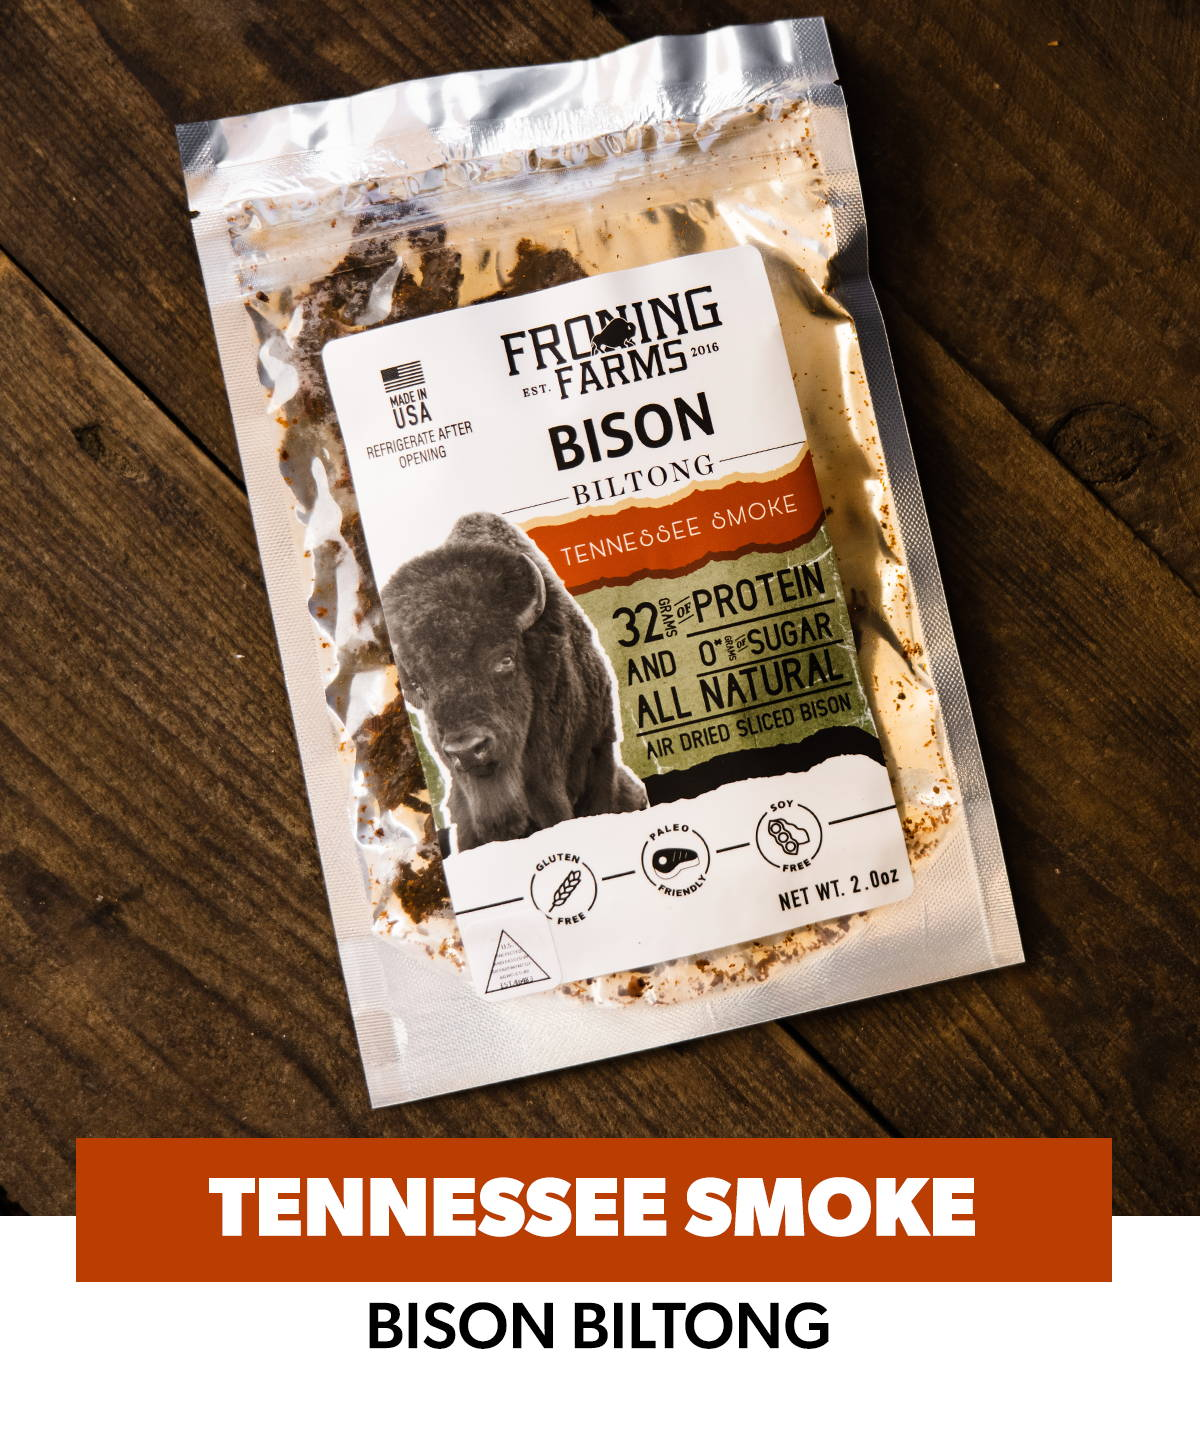 Froning Farms Bison Biltong Tennessee Smoke